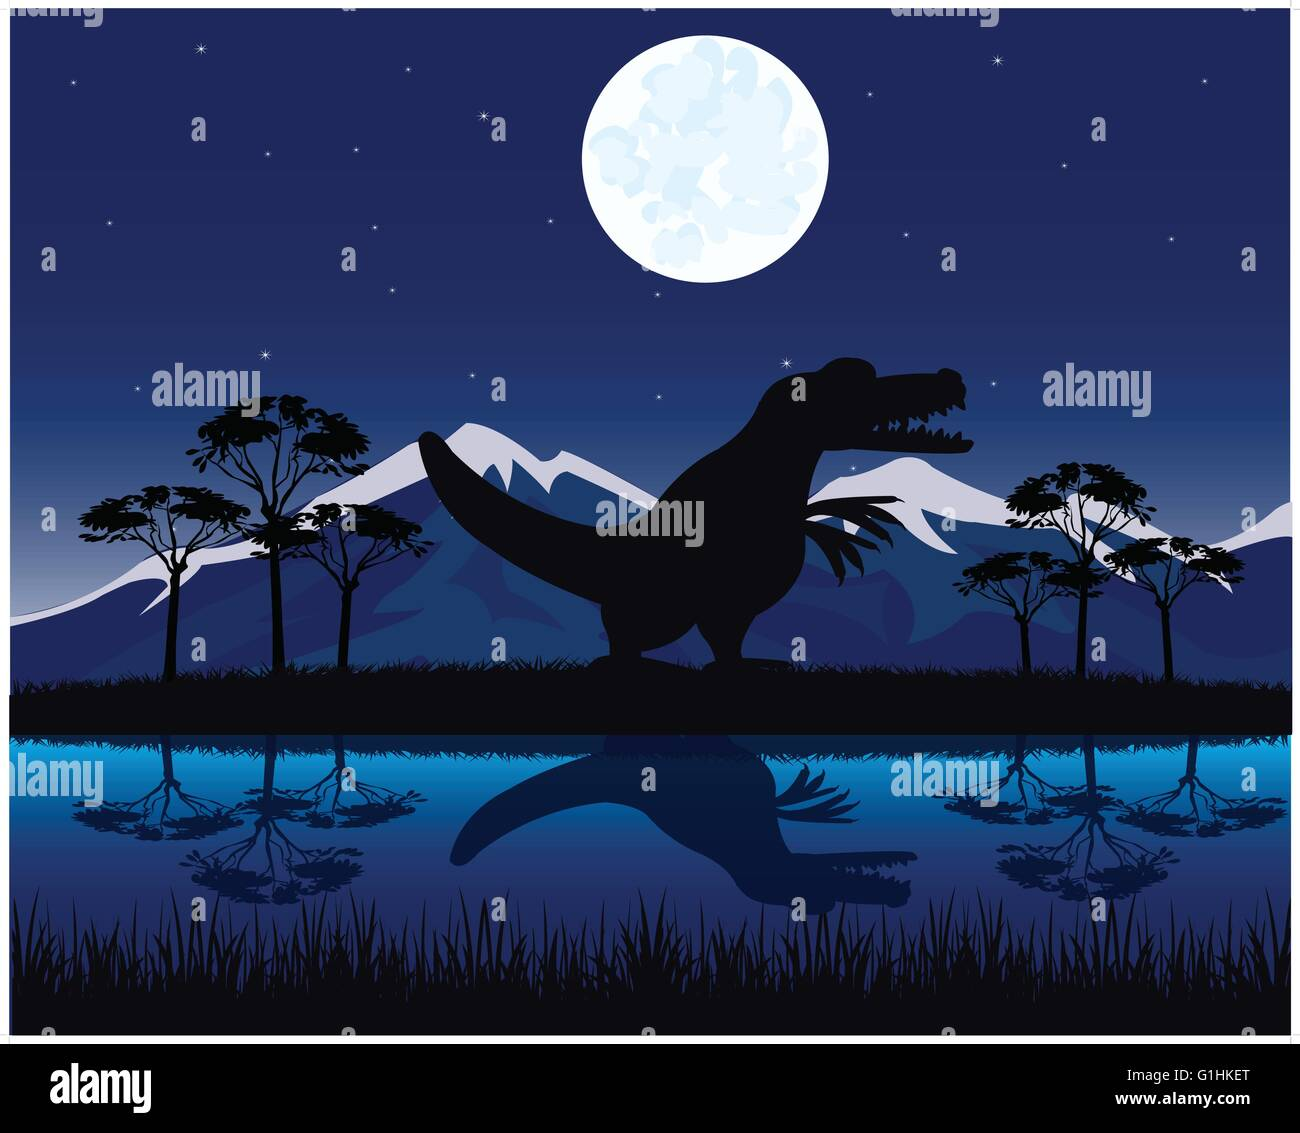 Dinosaurs appears in beautiful landscape at night - Stock Vector